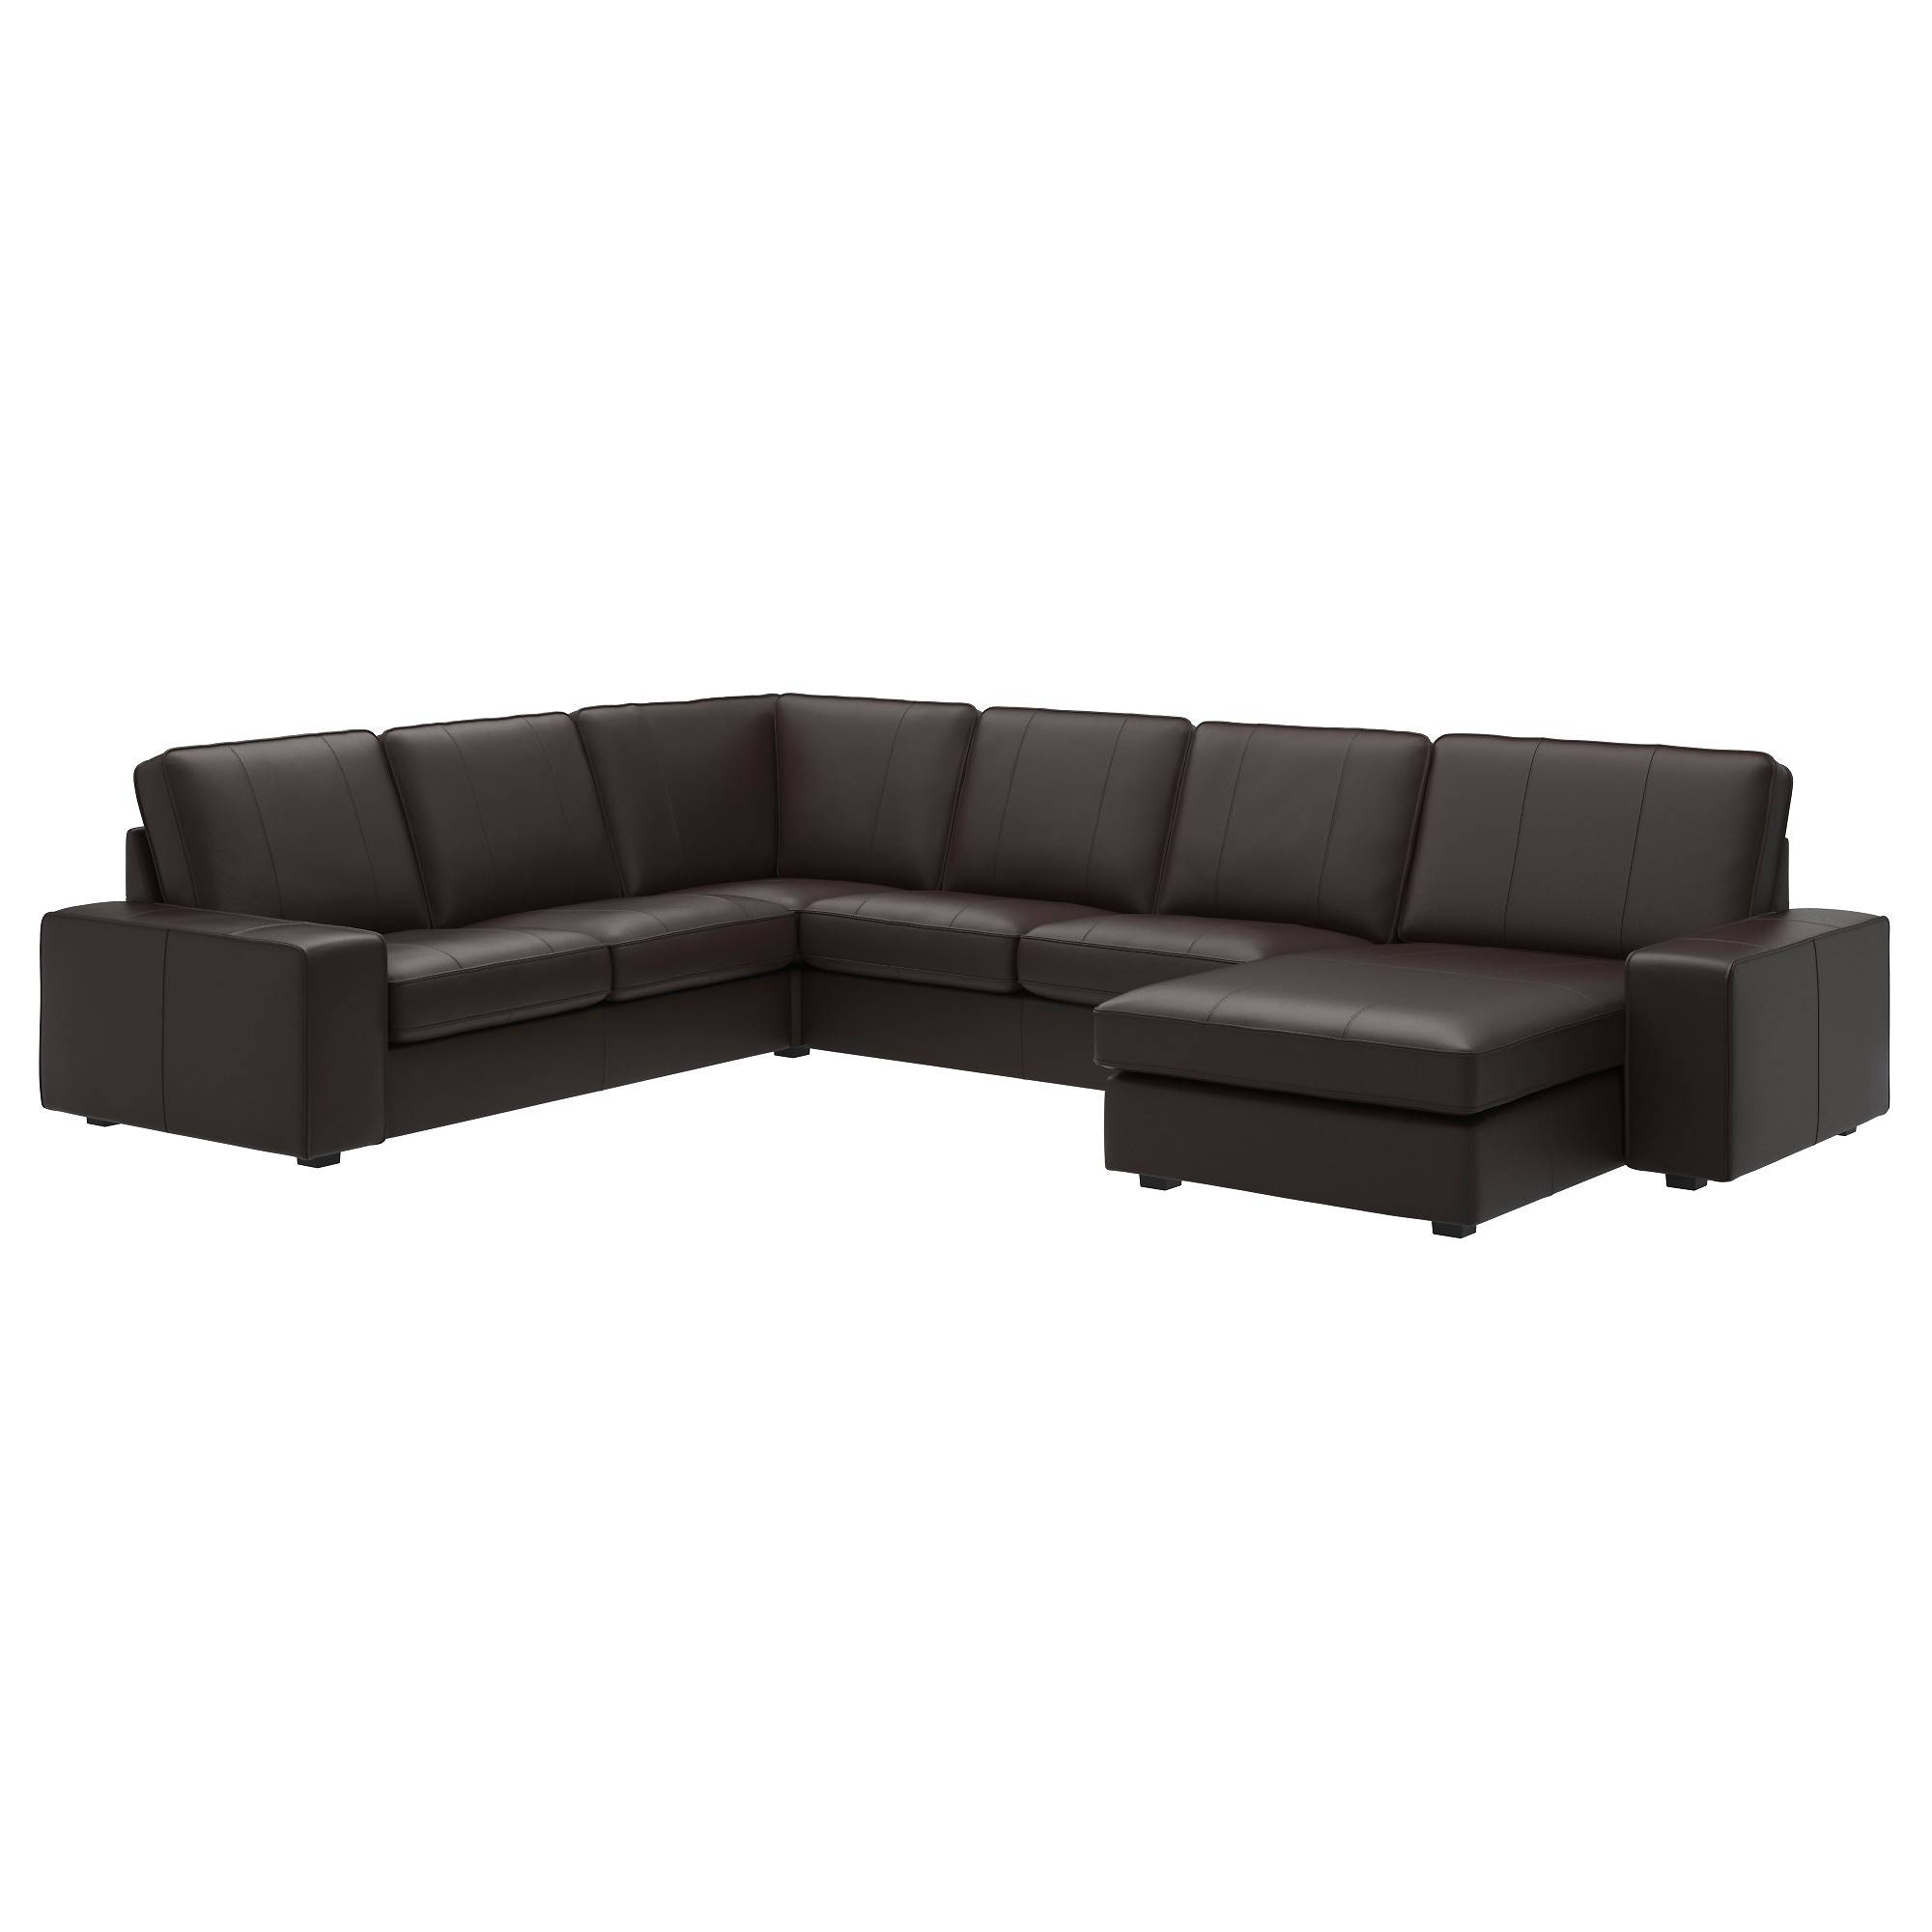 Sectional Sofas & Couches - Ikea pertaining to Backless Chaise Sofa (Image 21 of 30)